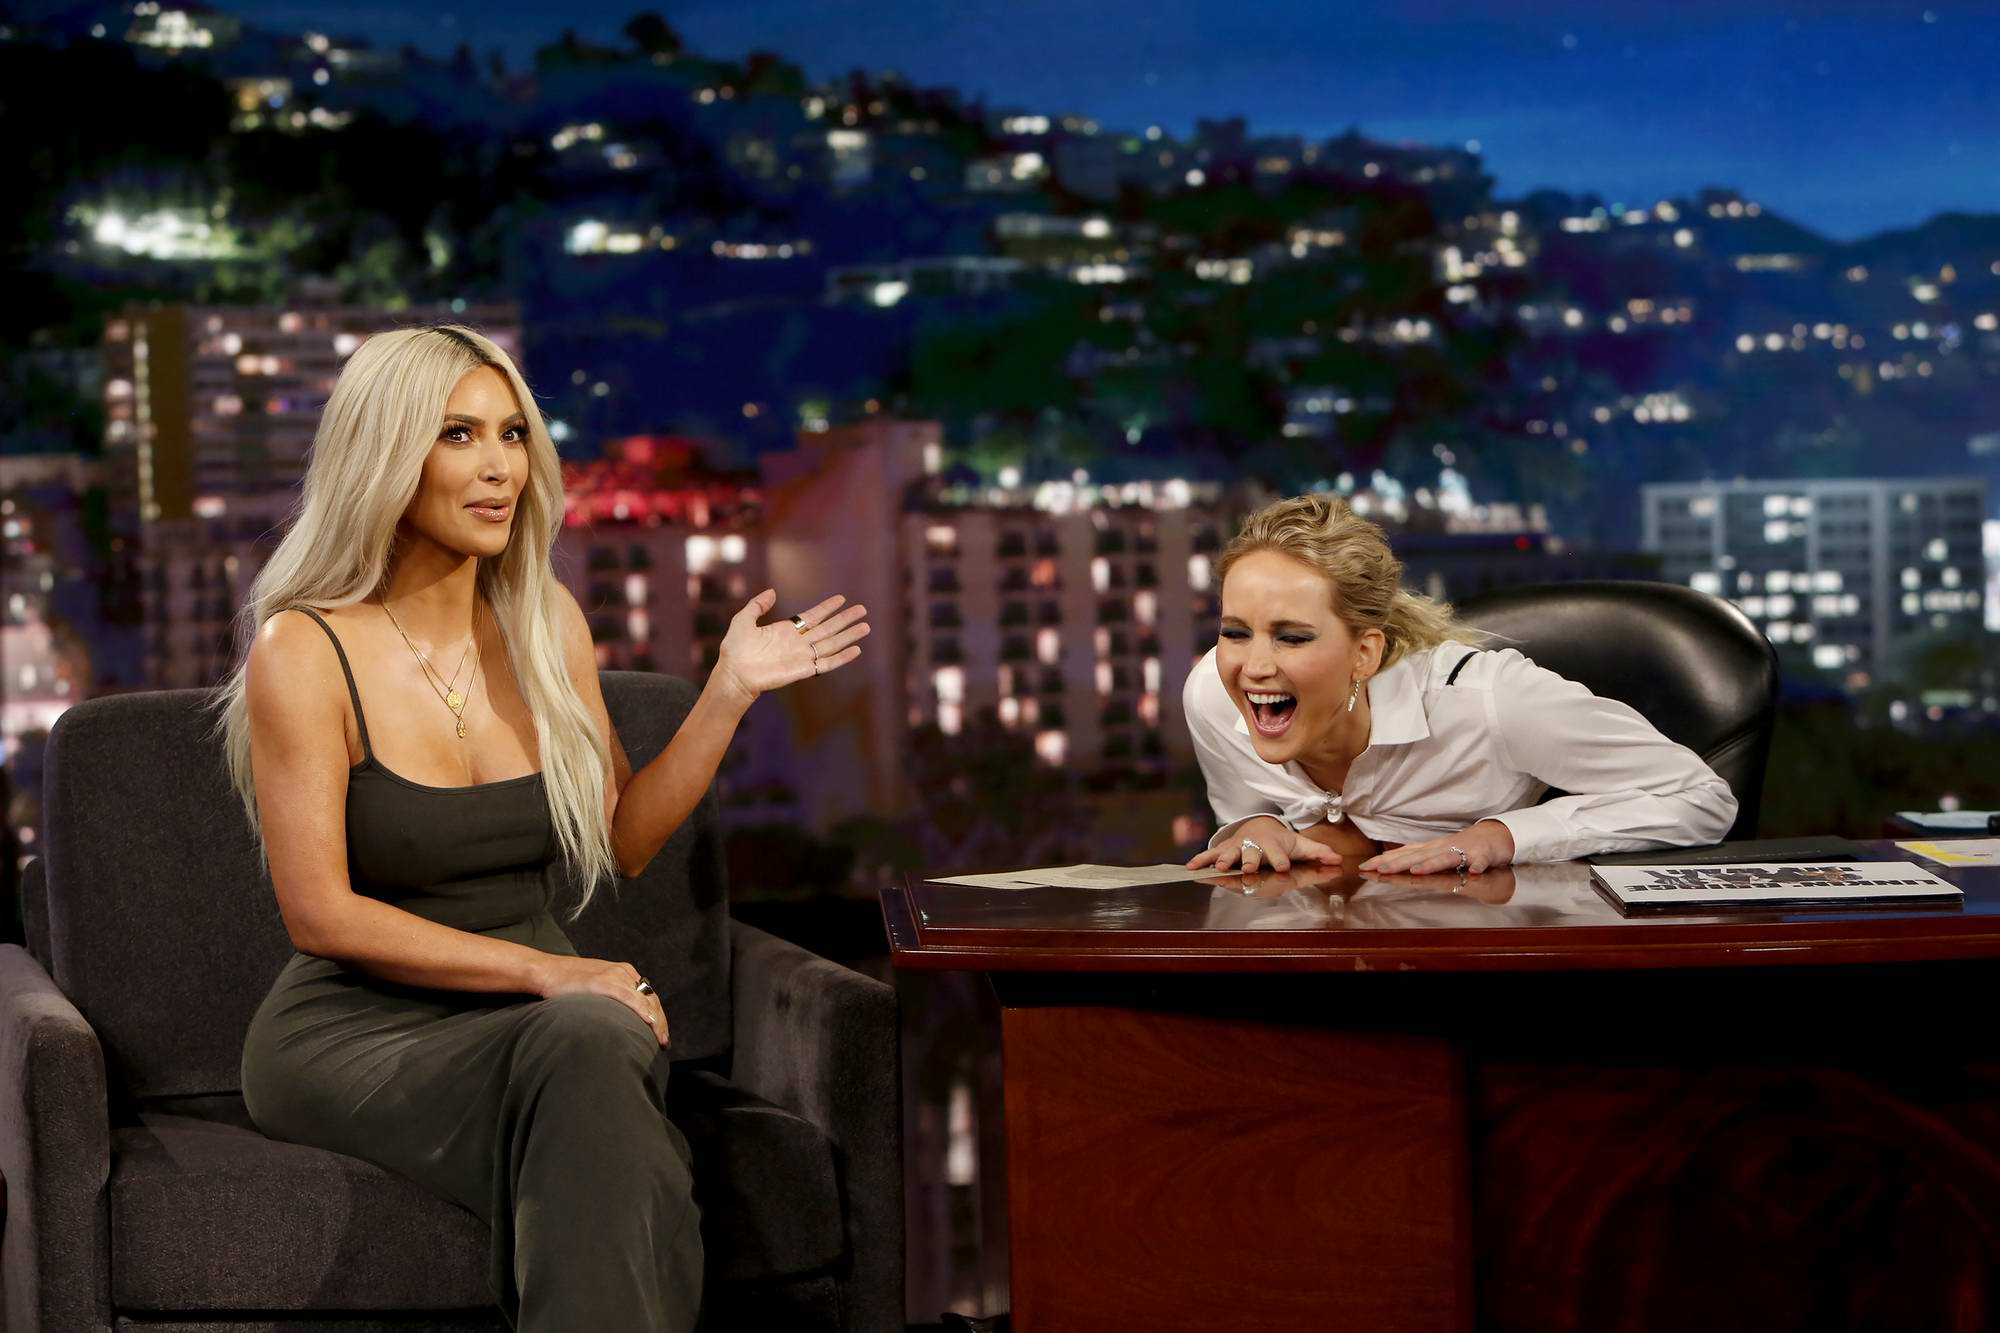 Jennifer Lawrence guest hosting Kim Kardashian on 'Jimmy Kimmel Live' in Los Angeles